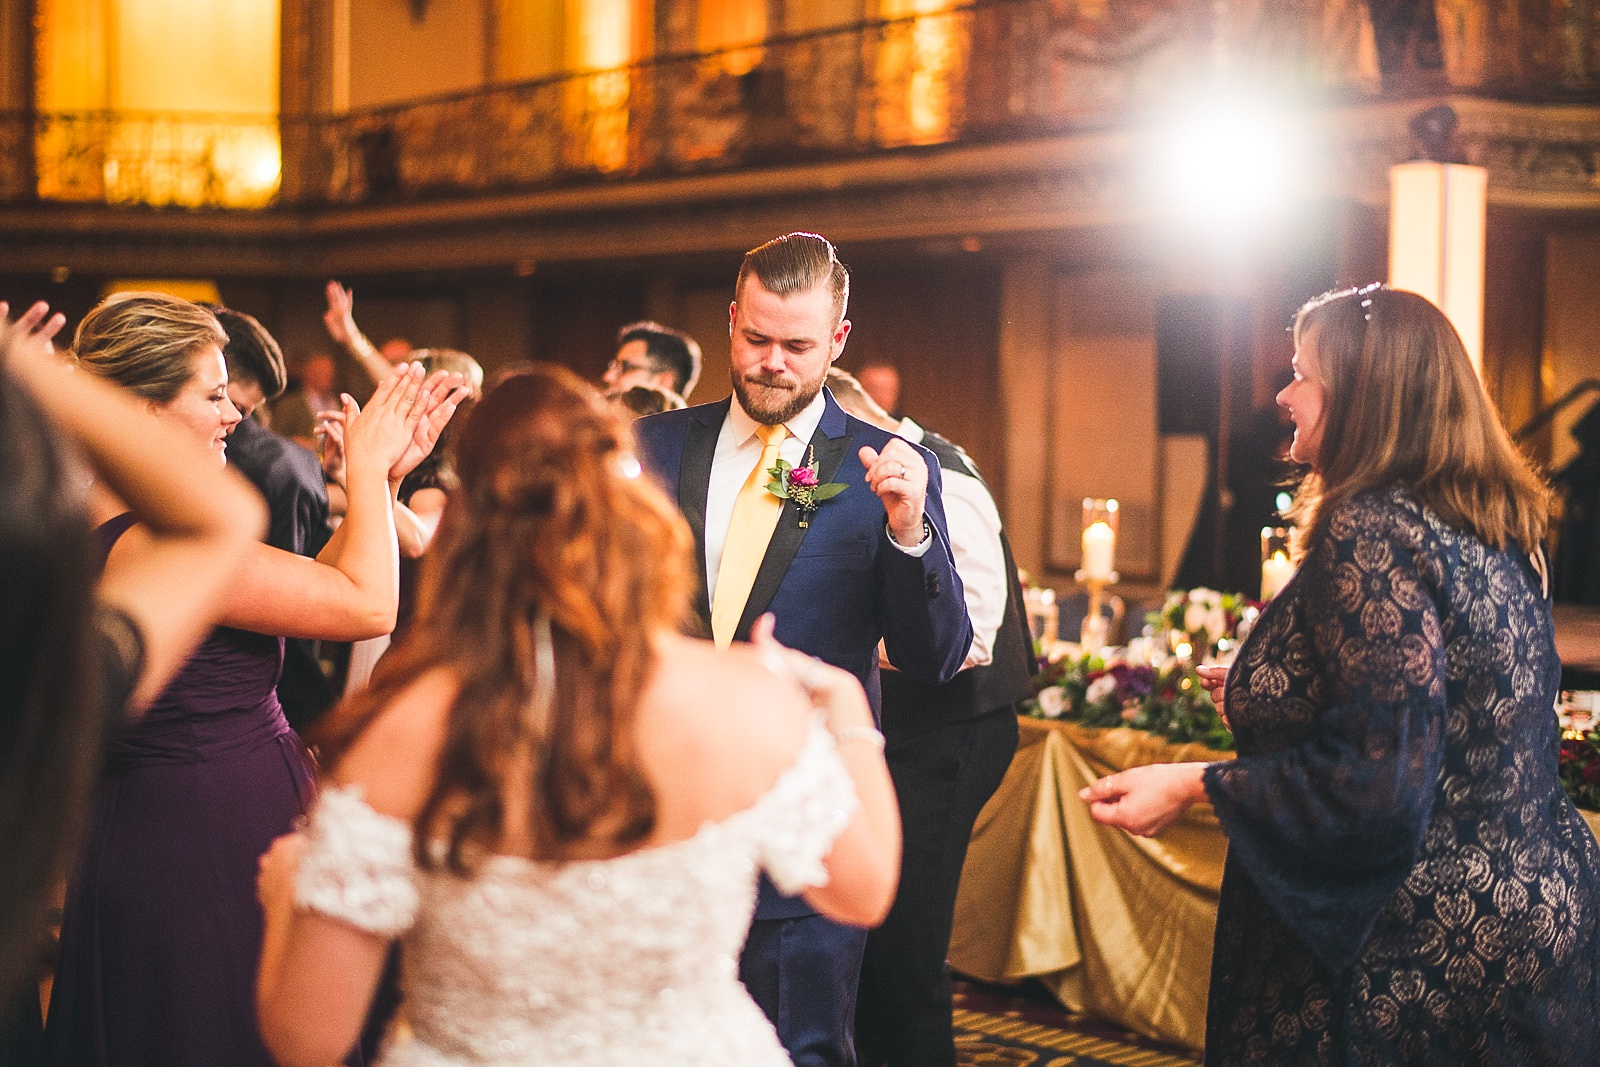 80 wedding reception photography inspiration - Hilton Chicago Wedding Photographer // Sarah + Aaron